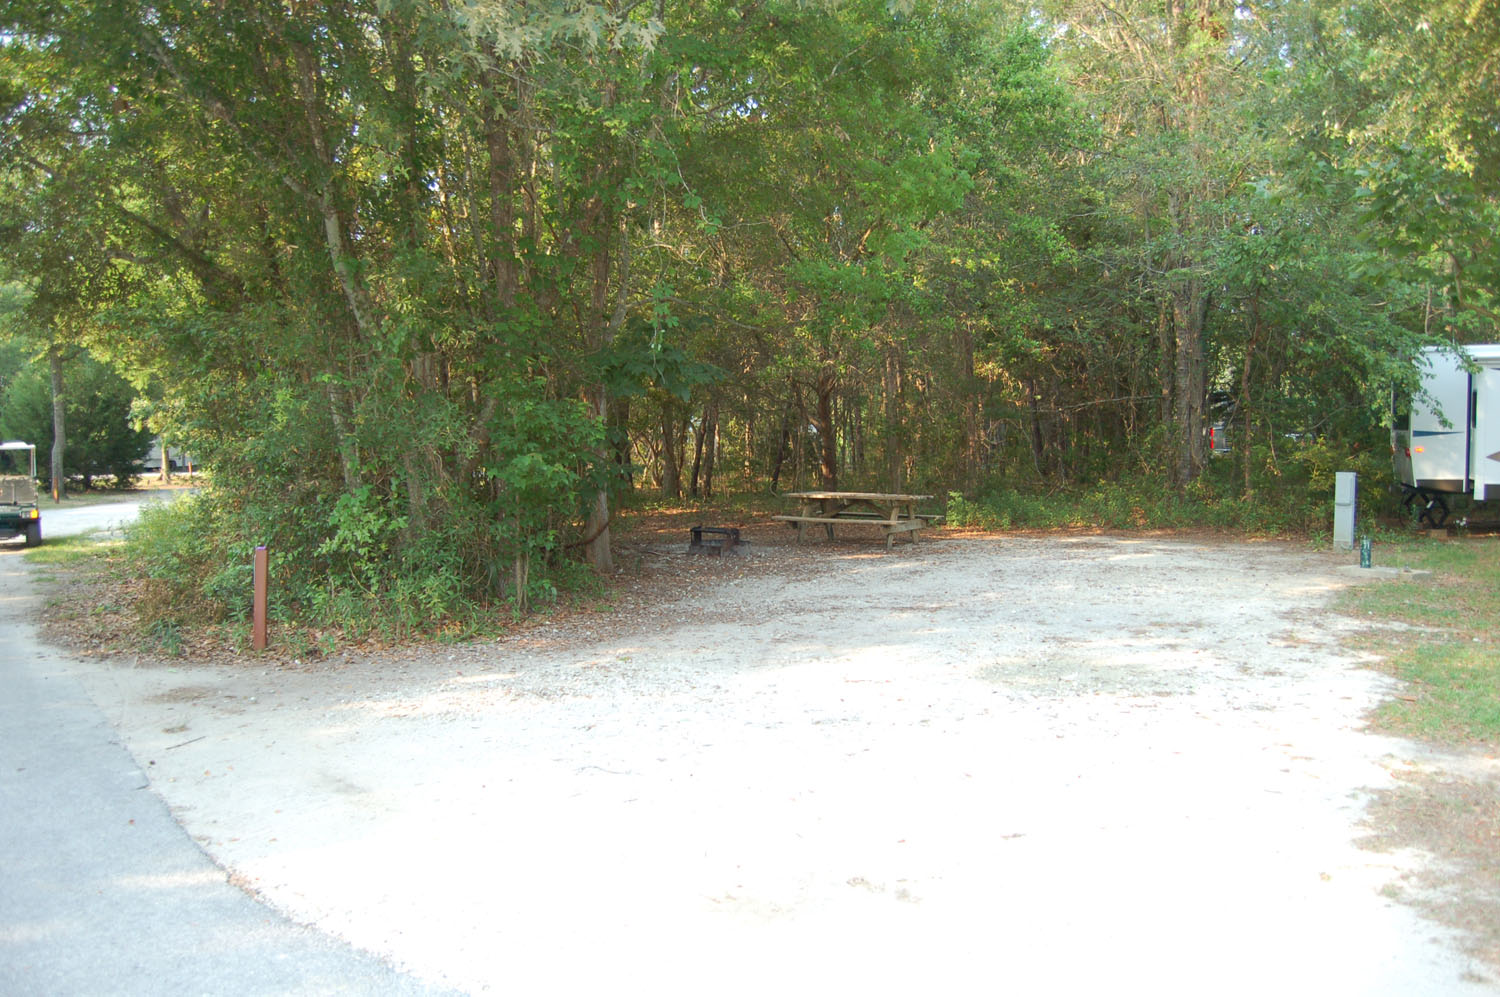 Image of campsite #75 at the Campground at James Island County Park